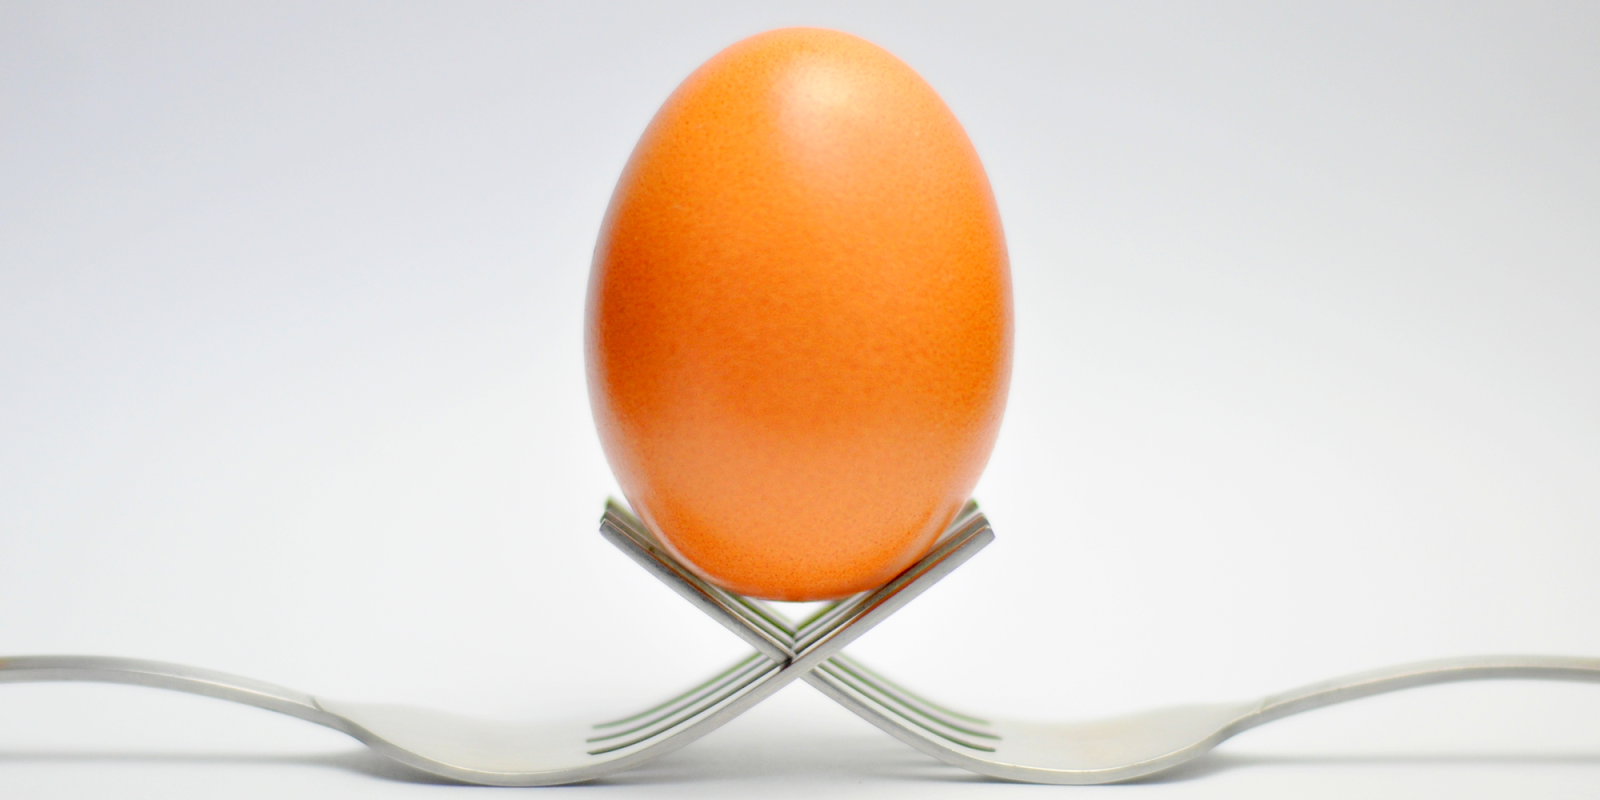 Egg balanced on intersecting forks